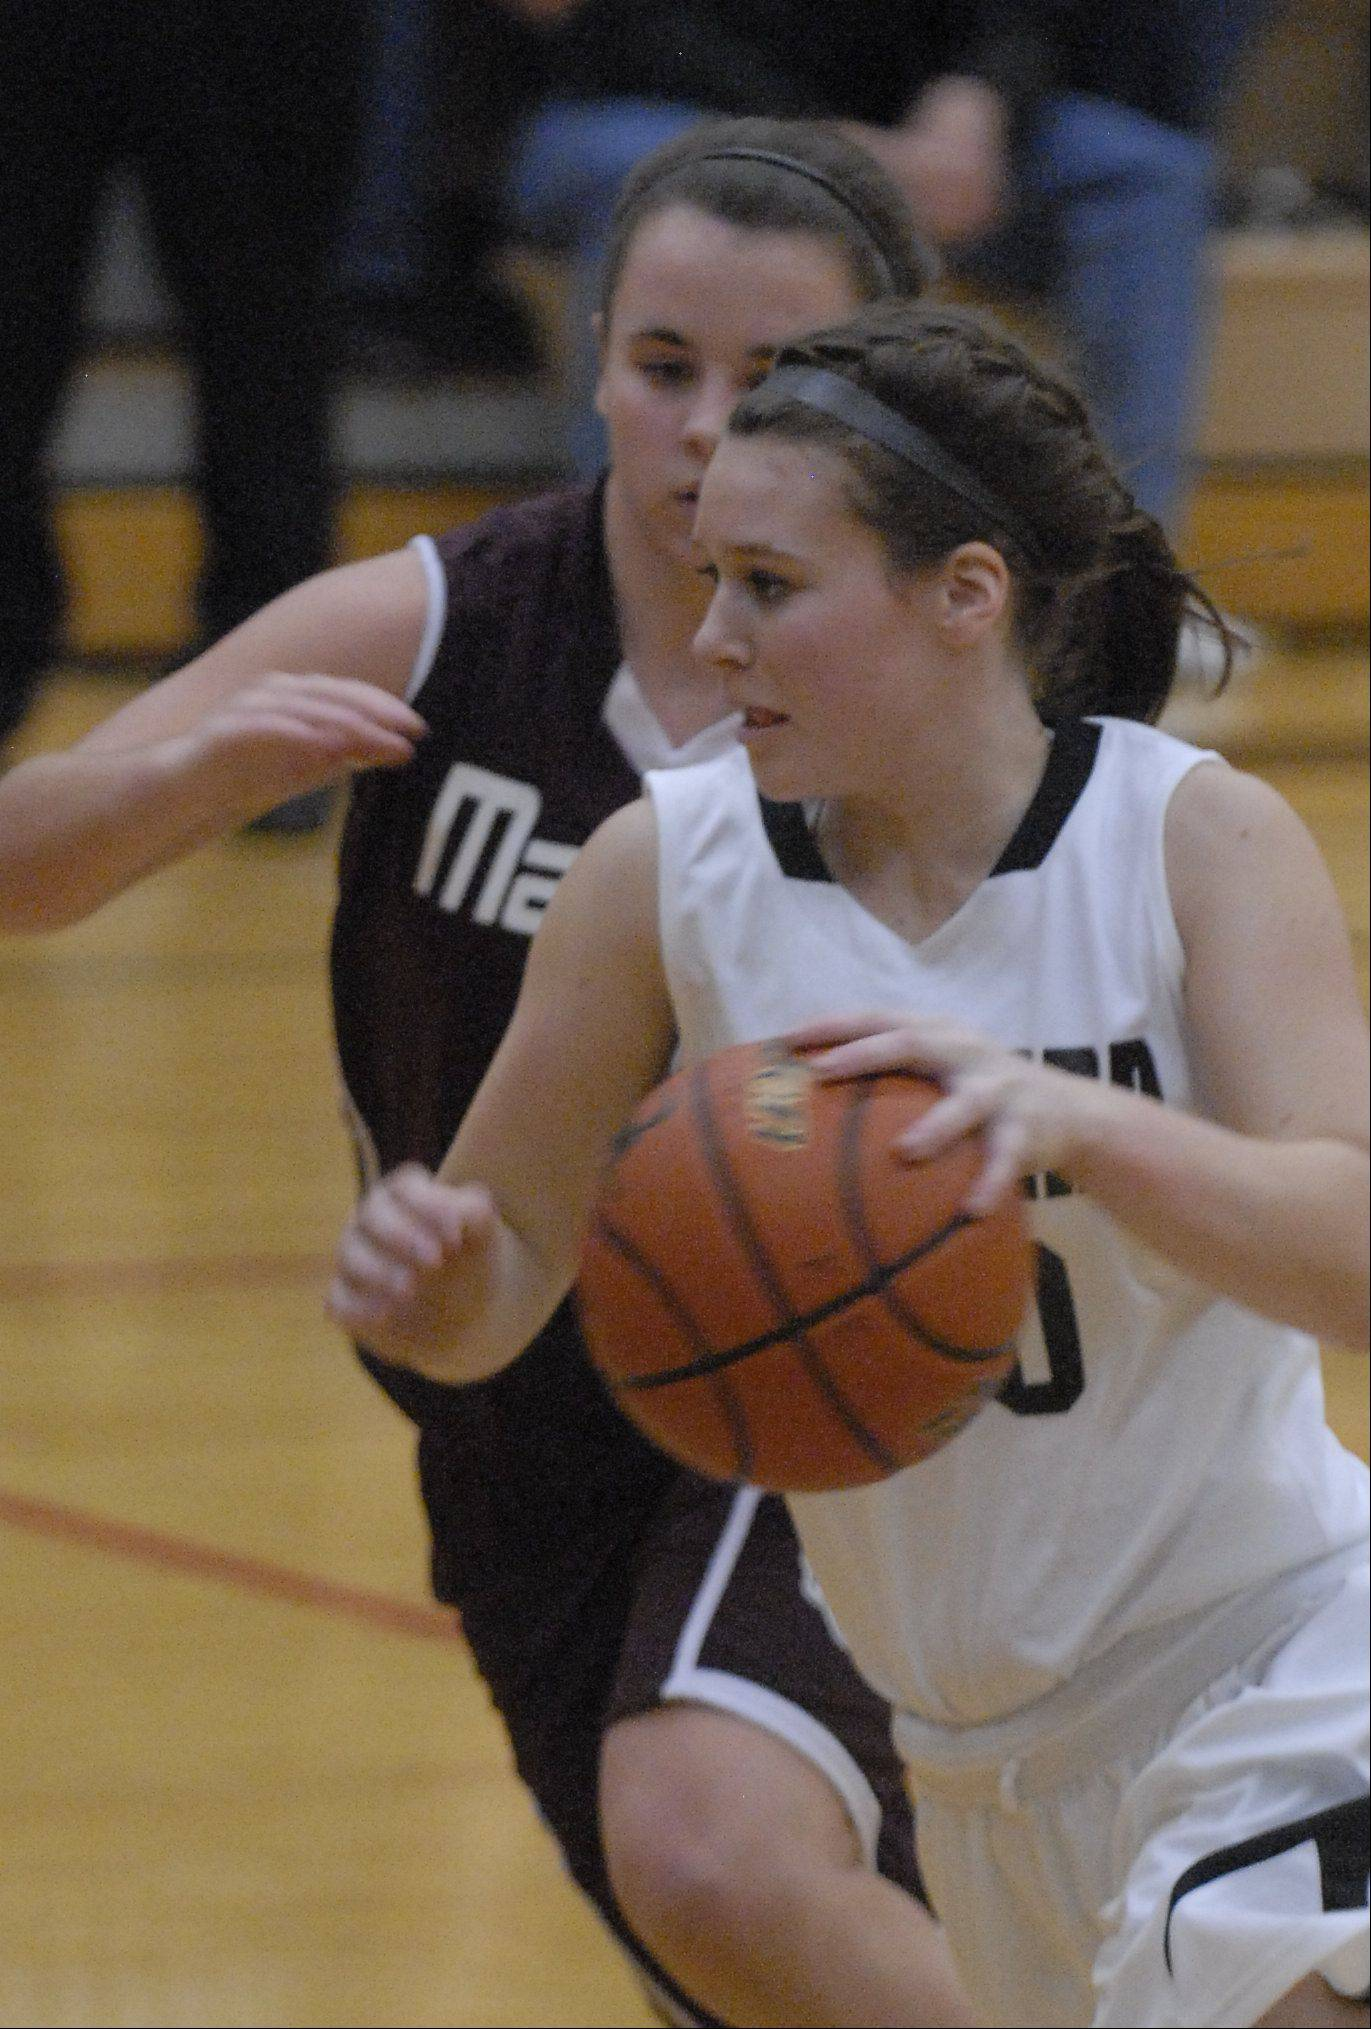 Images from the Marengo vs. Kaneland girls basketball game Tuesday, February 7, 2012.